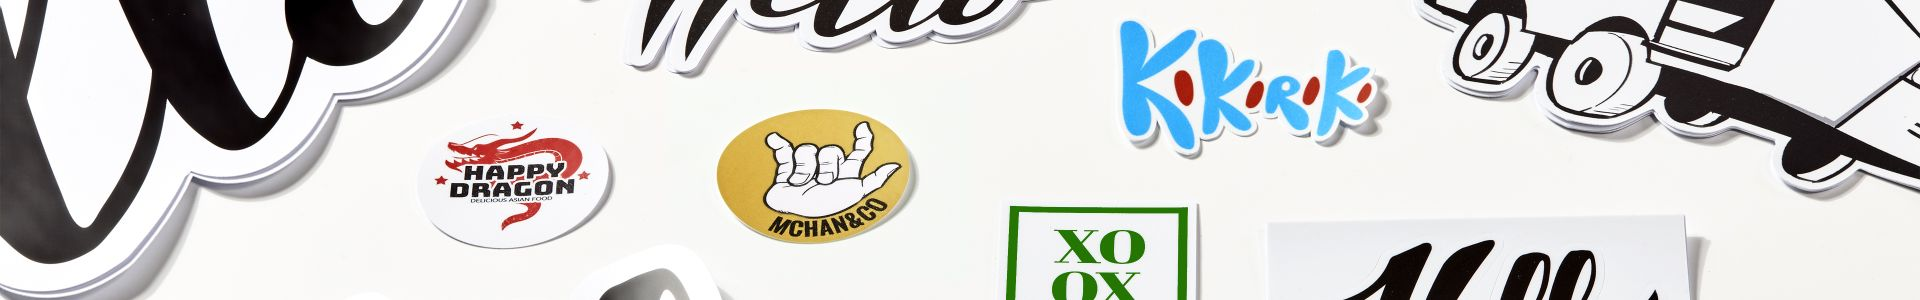 Screen printed stickers | Camaloon